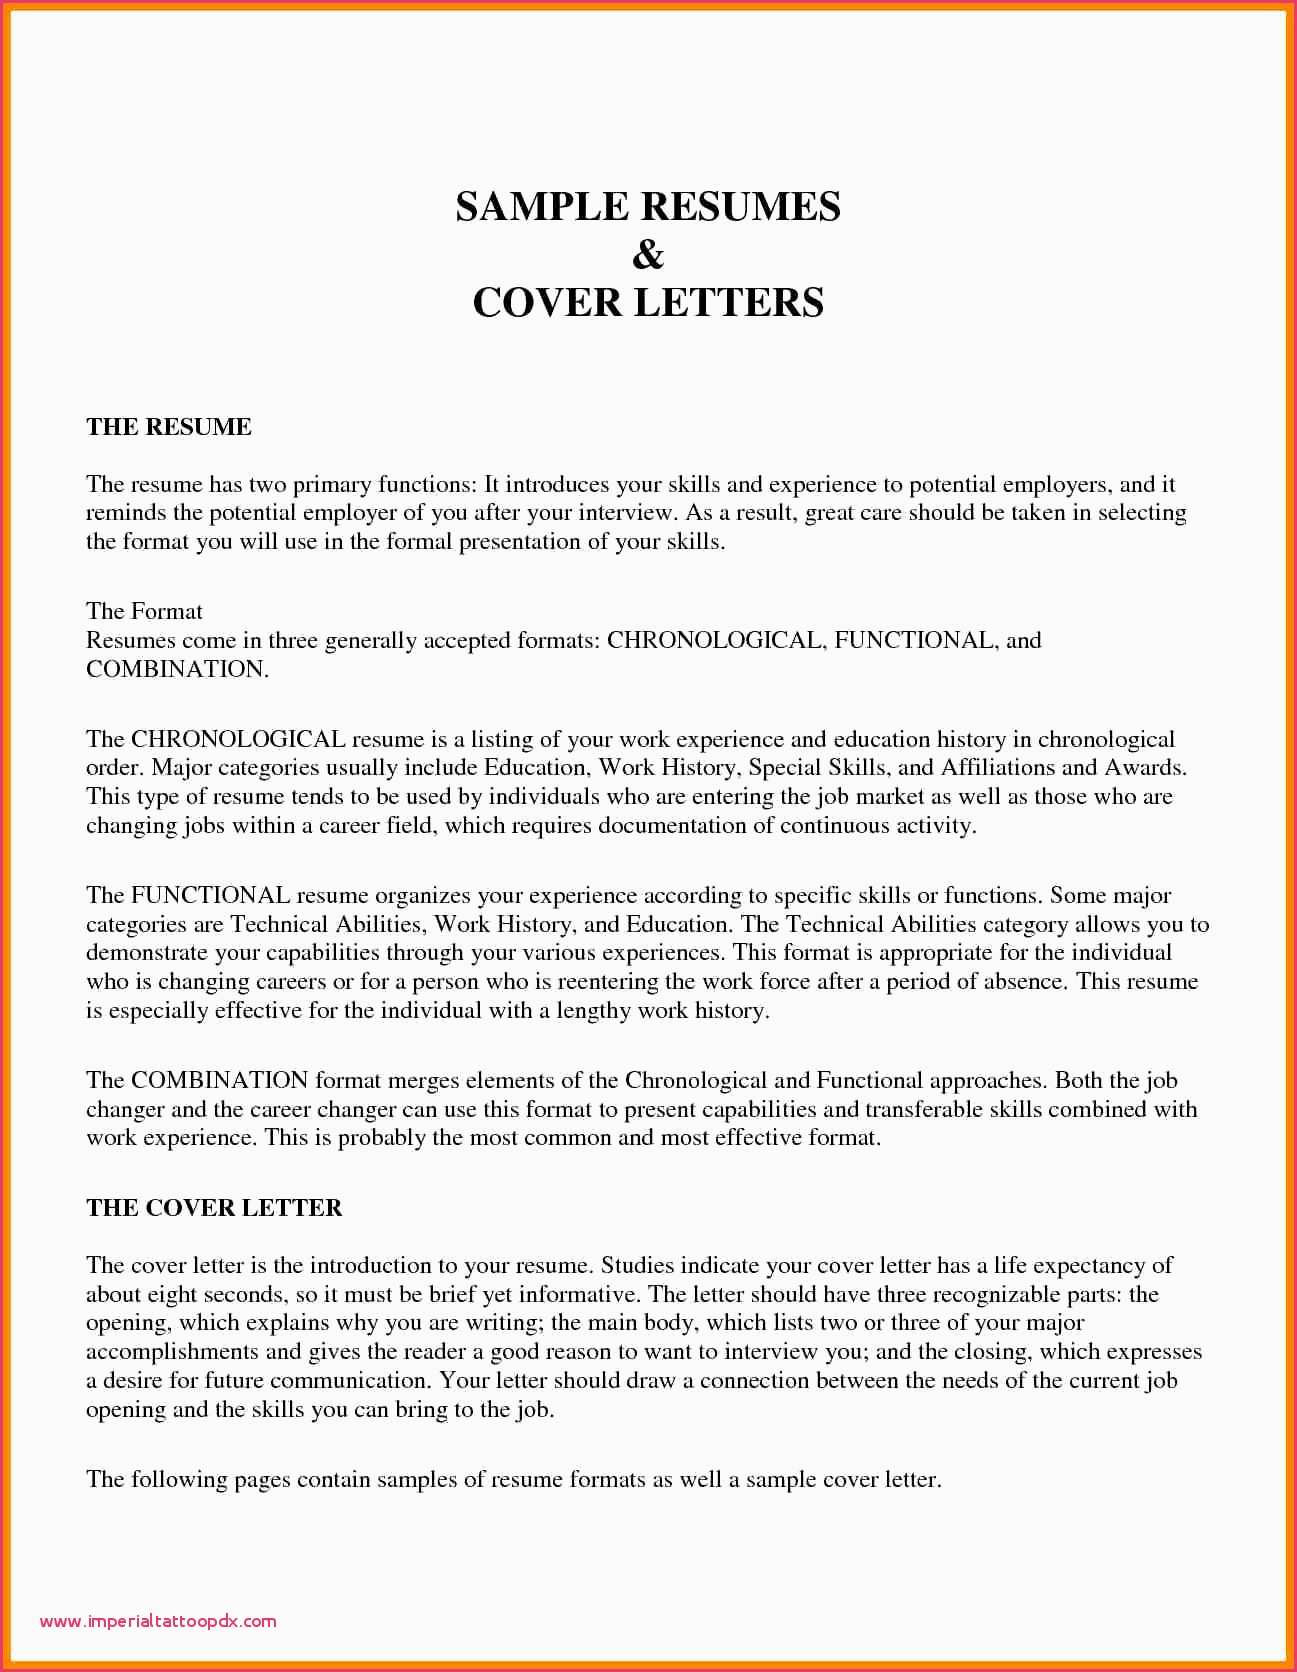 Resume format for Experienced - Cna Resume Sample New Skills Lovely Bsw 0d Best format Template